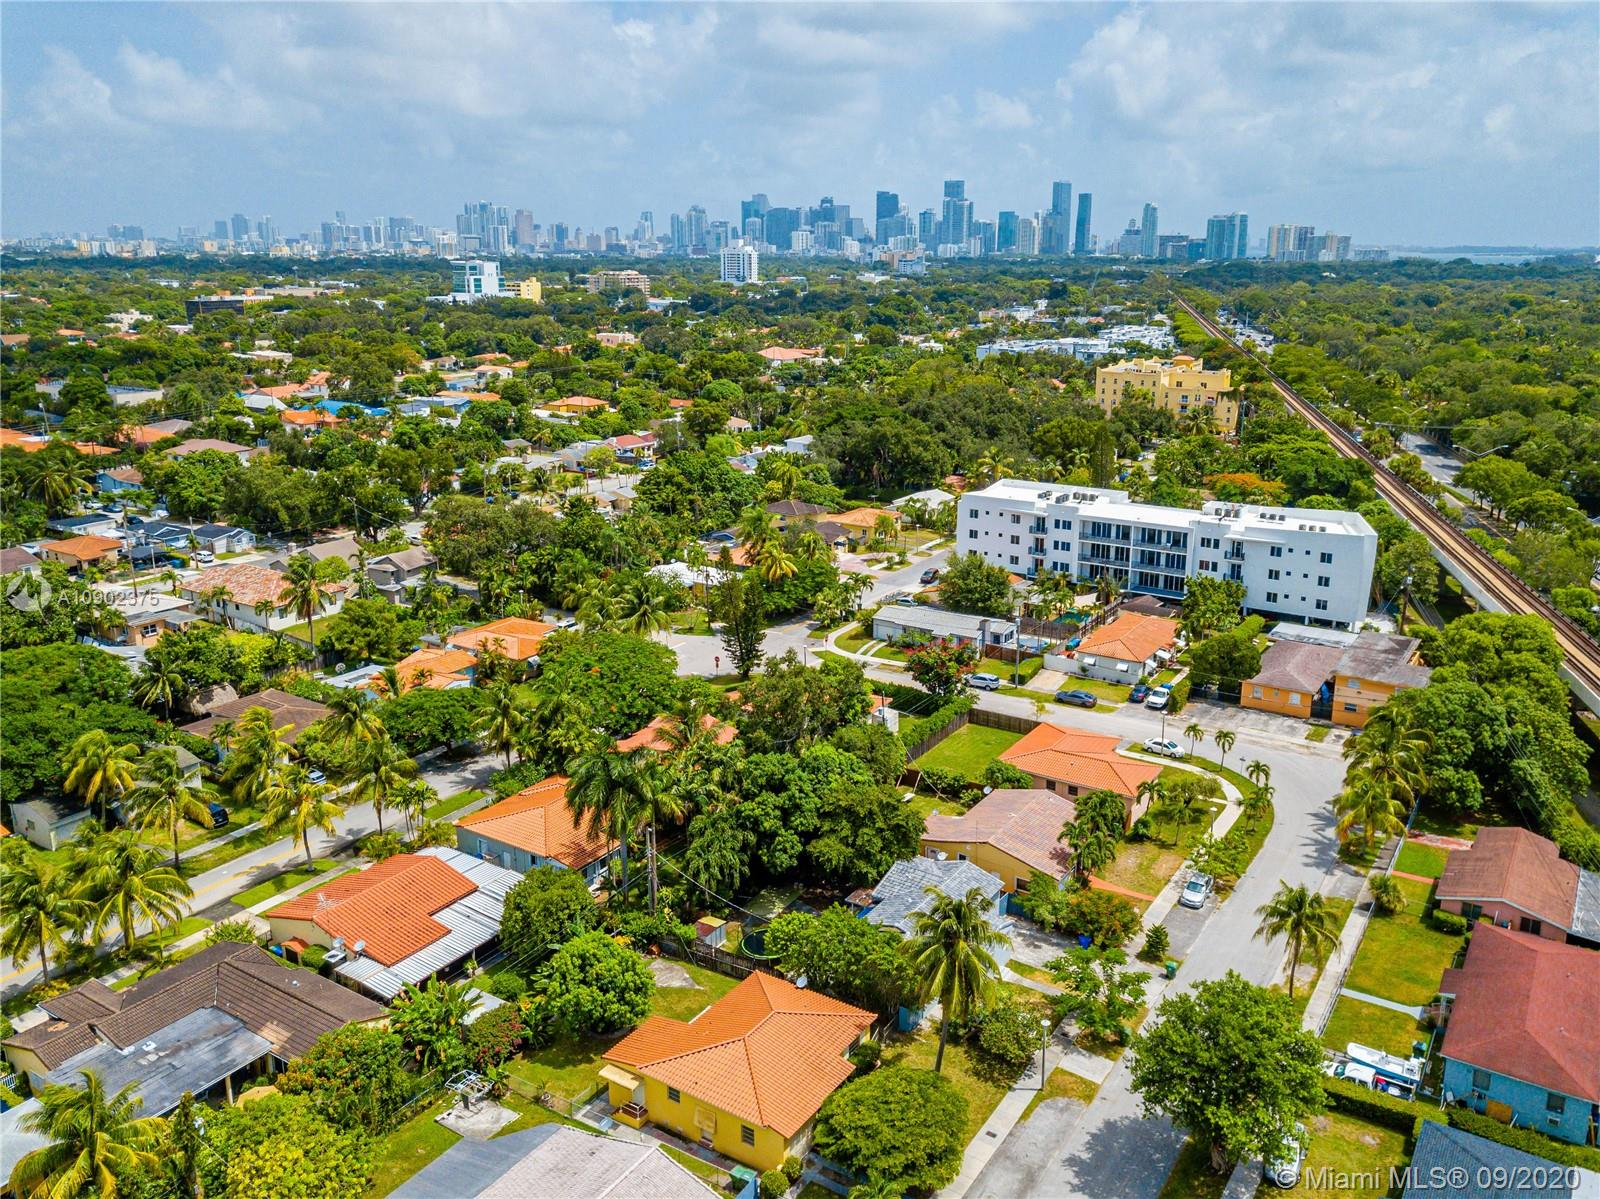 Beautiful, centrally located home in Silver Bluff area. Close to USI, Coconut Grove, Brickell and downtown Miami, the best location ever. Barrel tile roof, original wood floors, 2 bedroom, 1 bathroom, Florida Room, 1 car garage,  new HVAC system 2019, newer kitchen cabinets and stainless steel appliances.